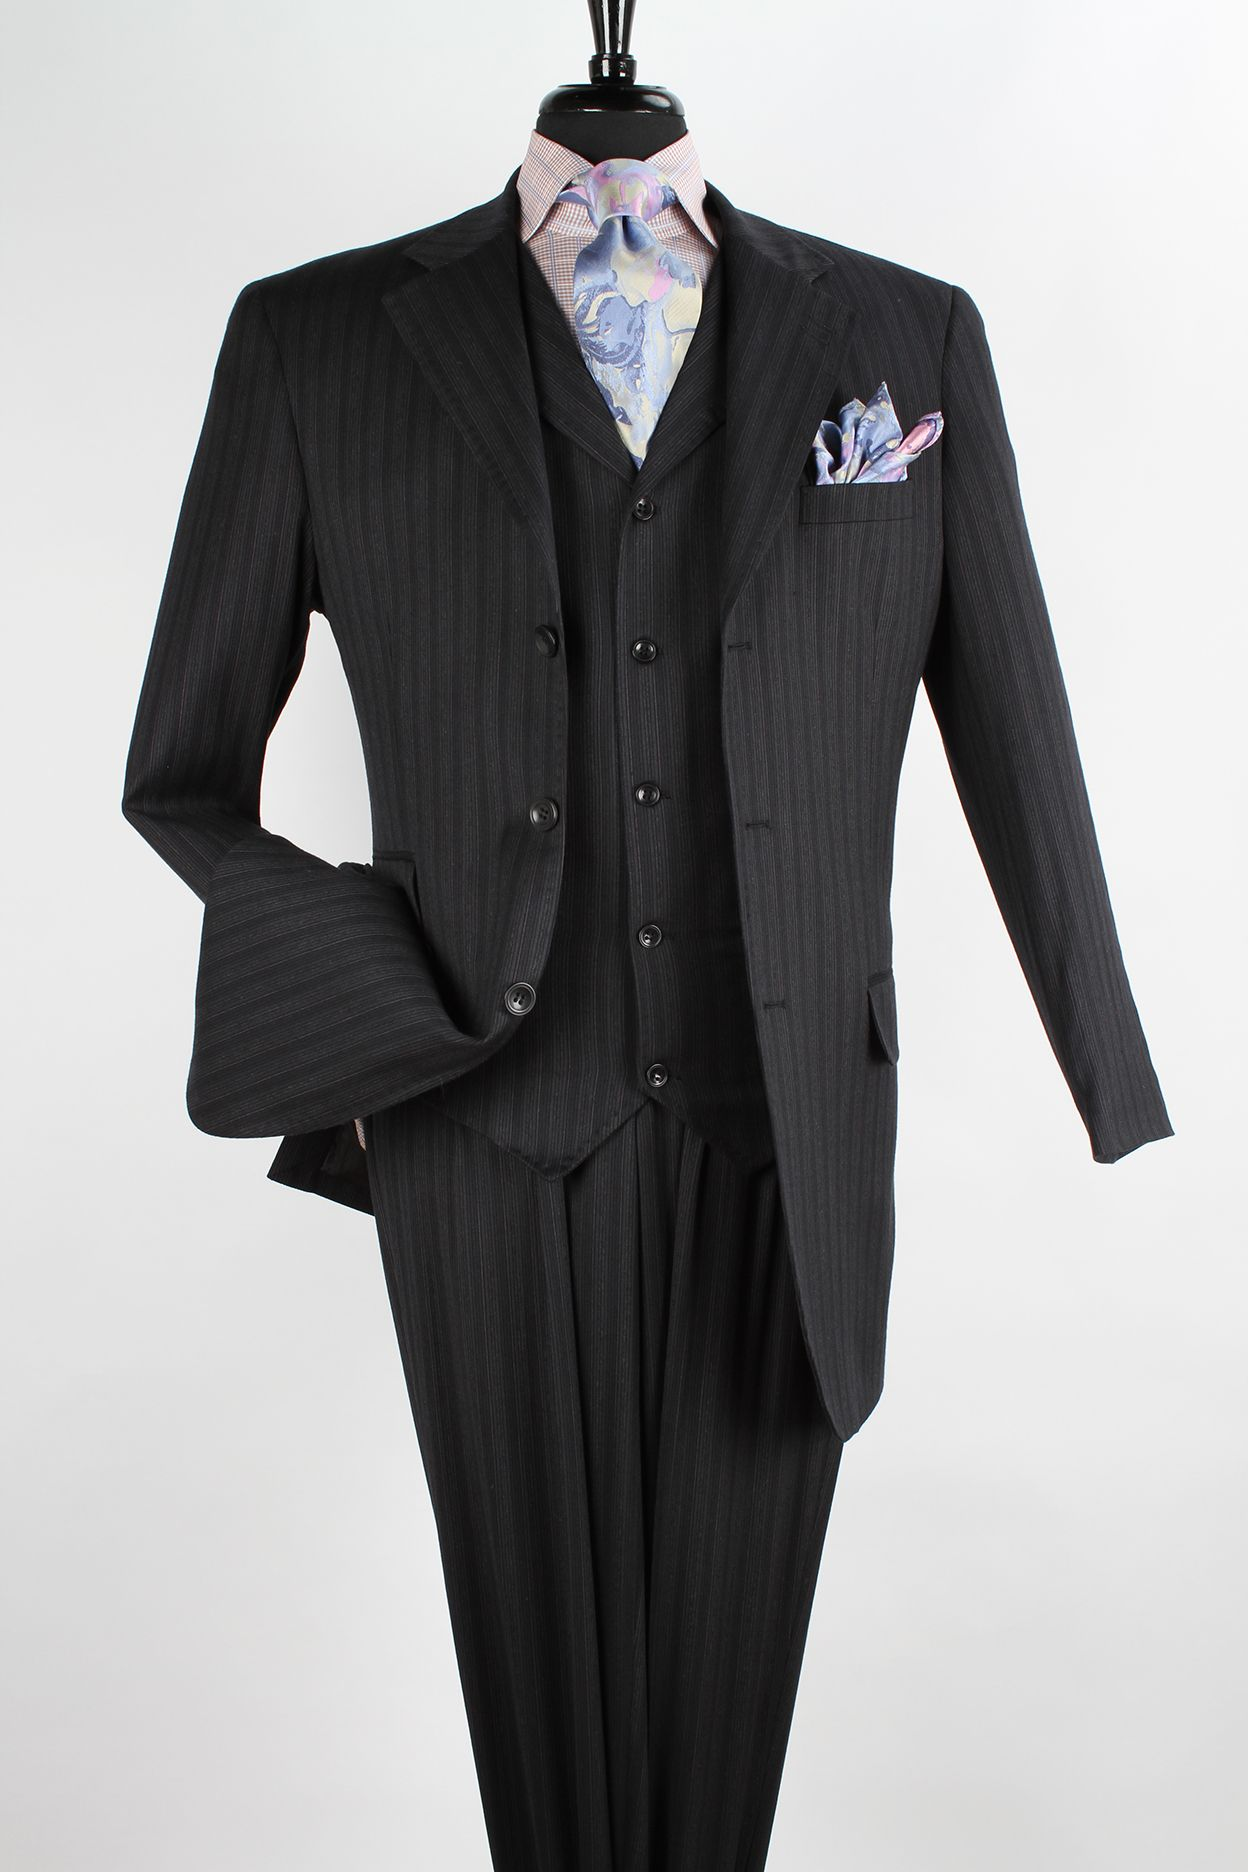 This Apollo King Men S 3 Piece 100 Wool Suit Comes In